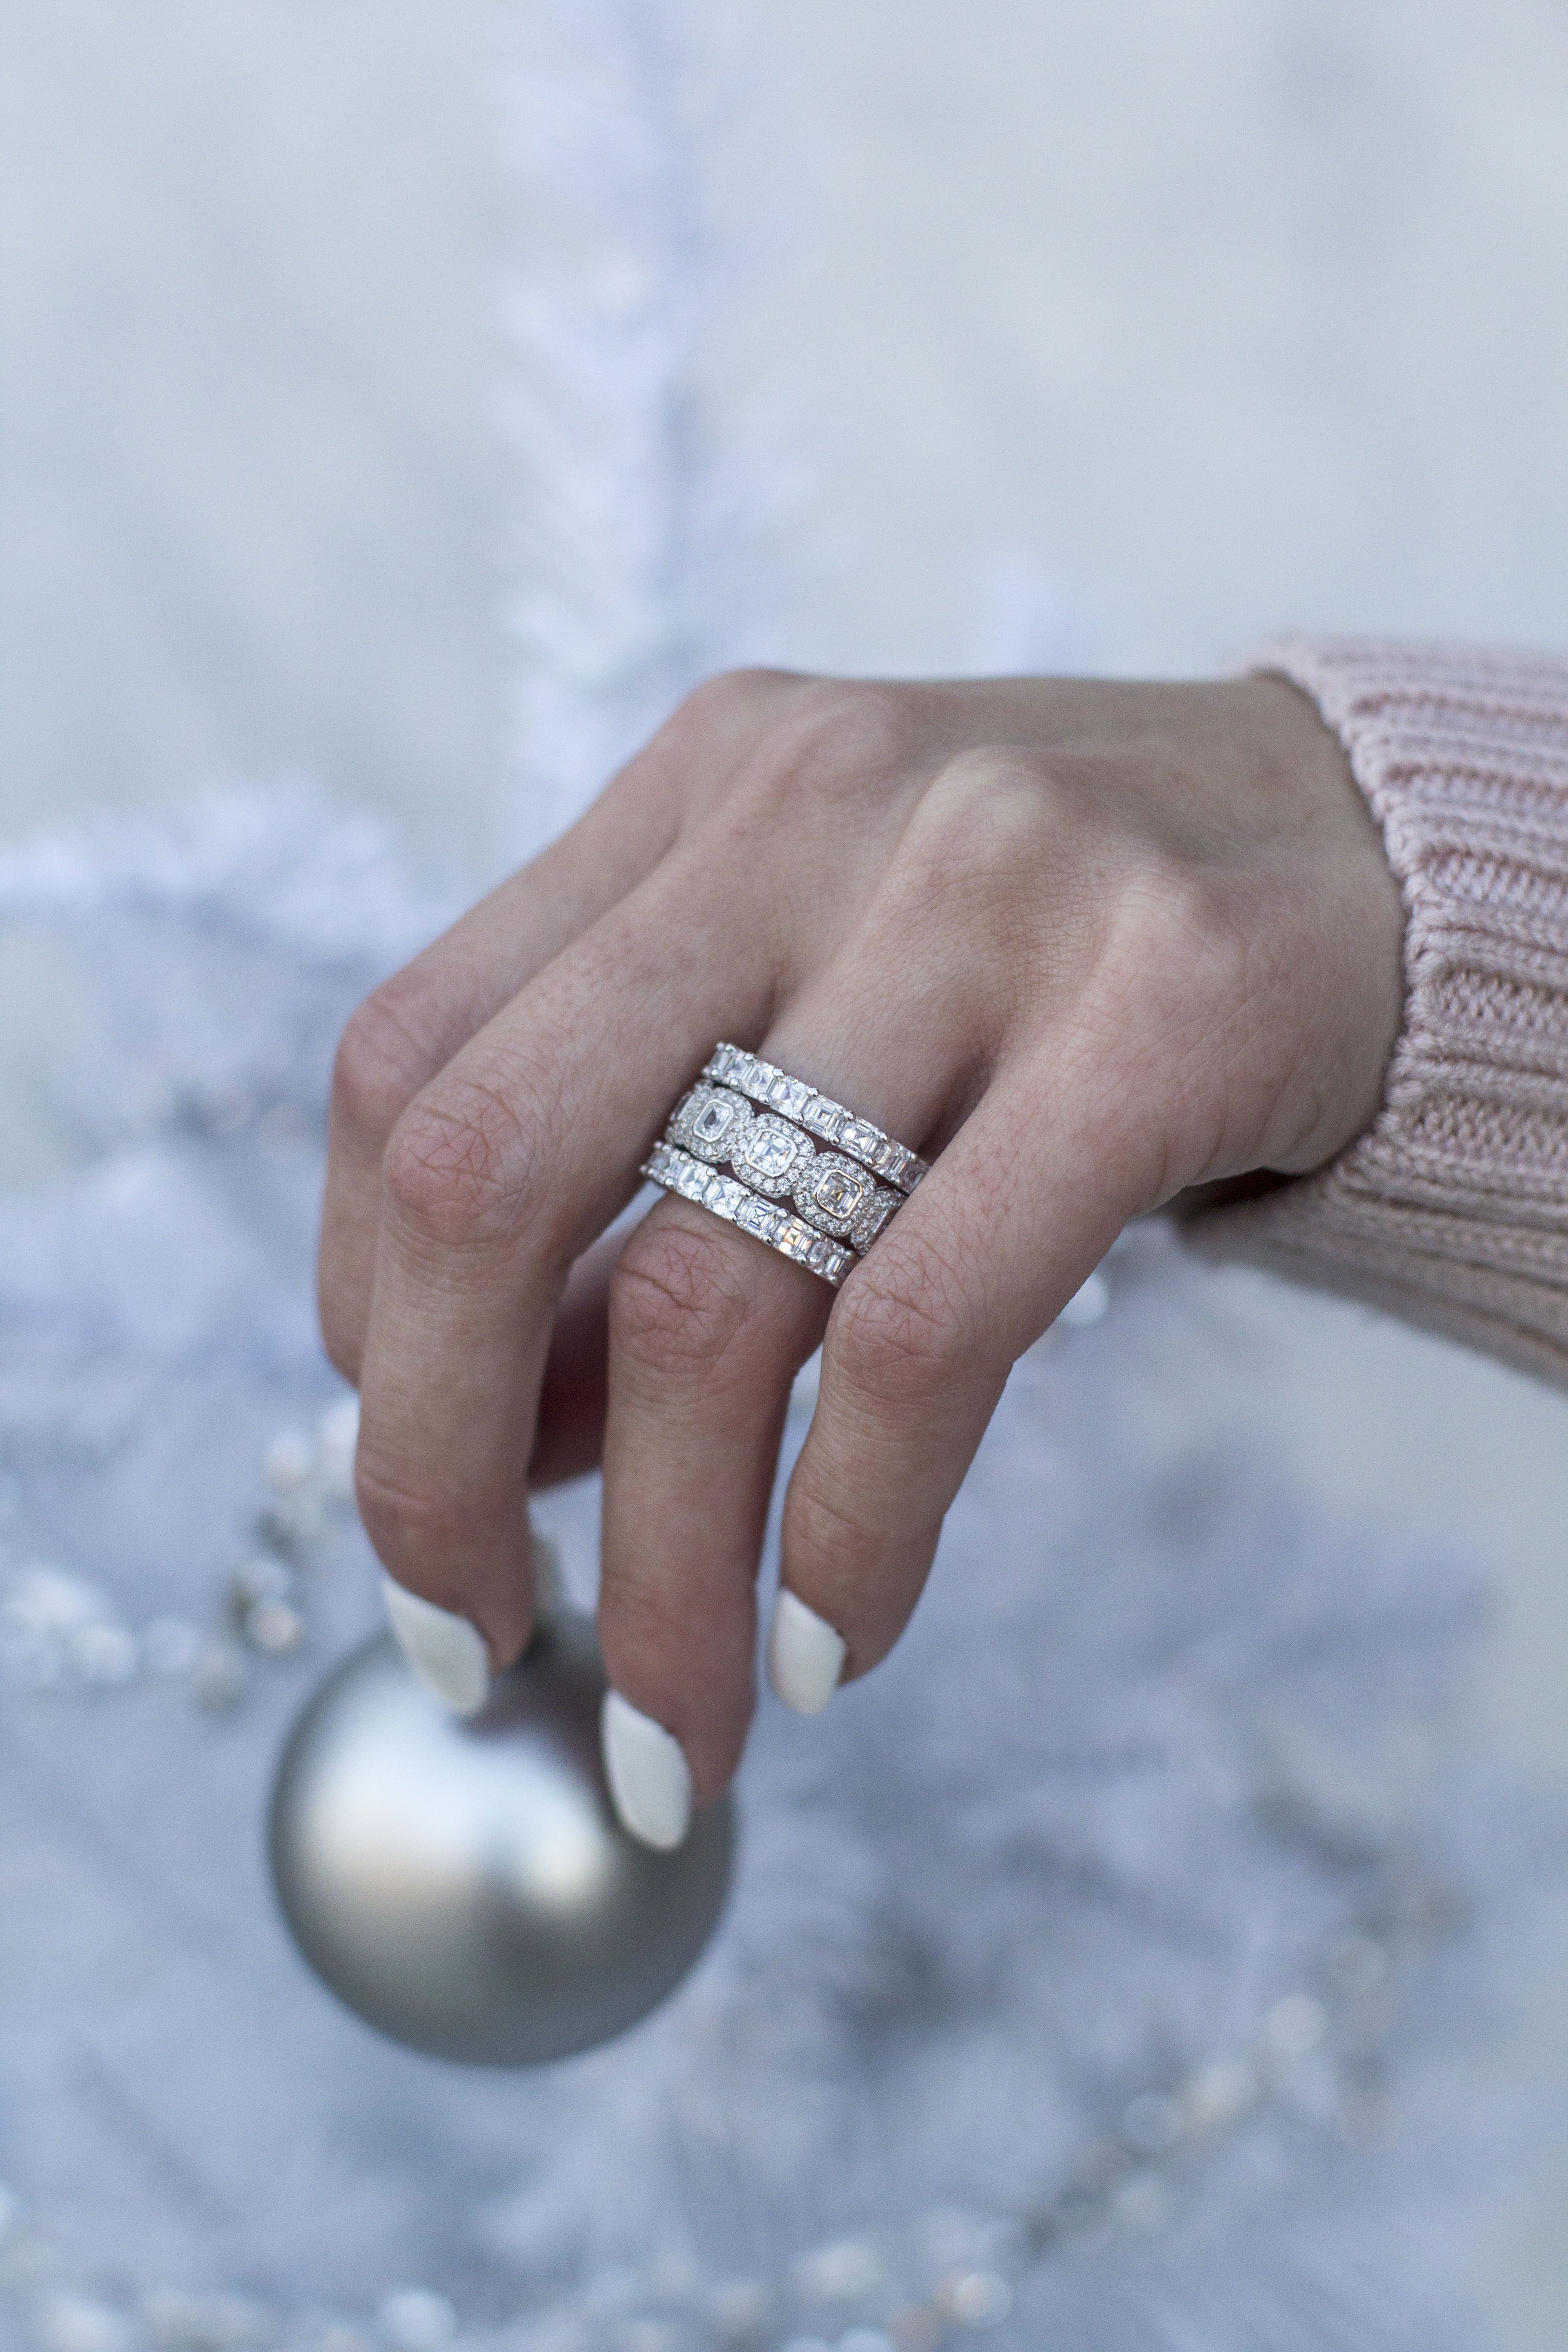 e9a99201384be 3 for $150 simulated diamond ring stacks from #EverlyRings. Shown ...